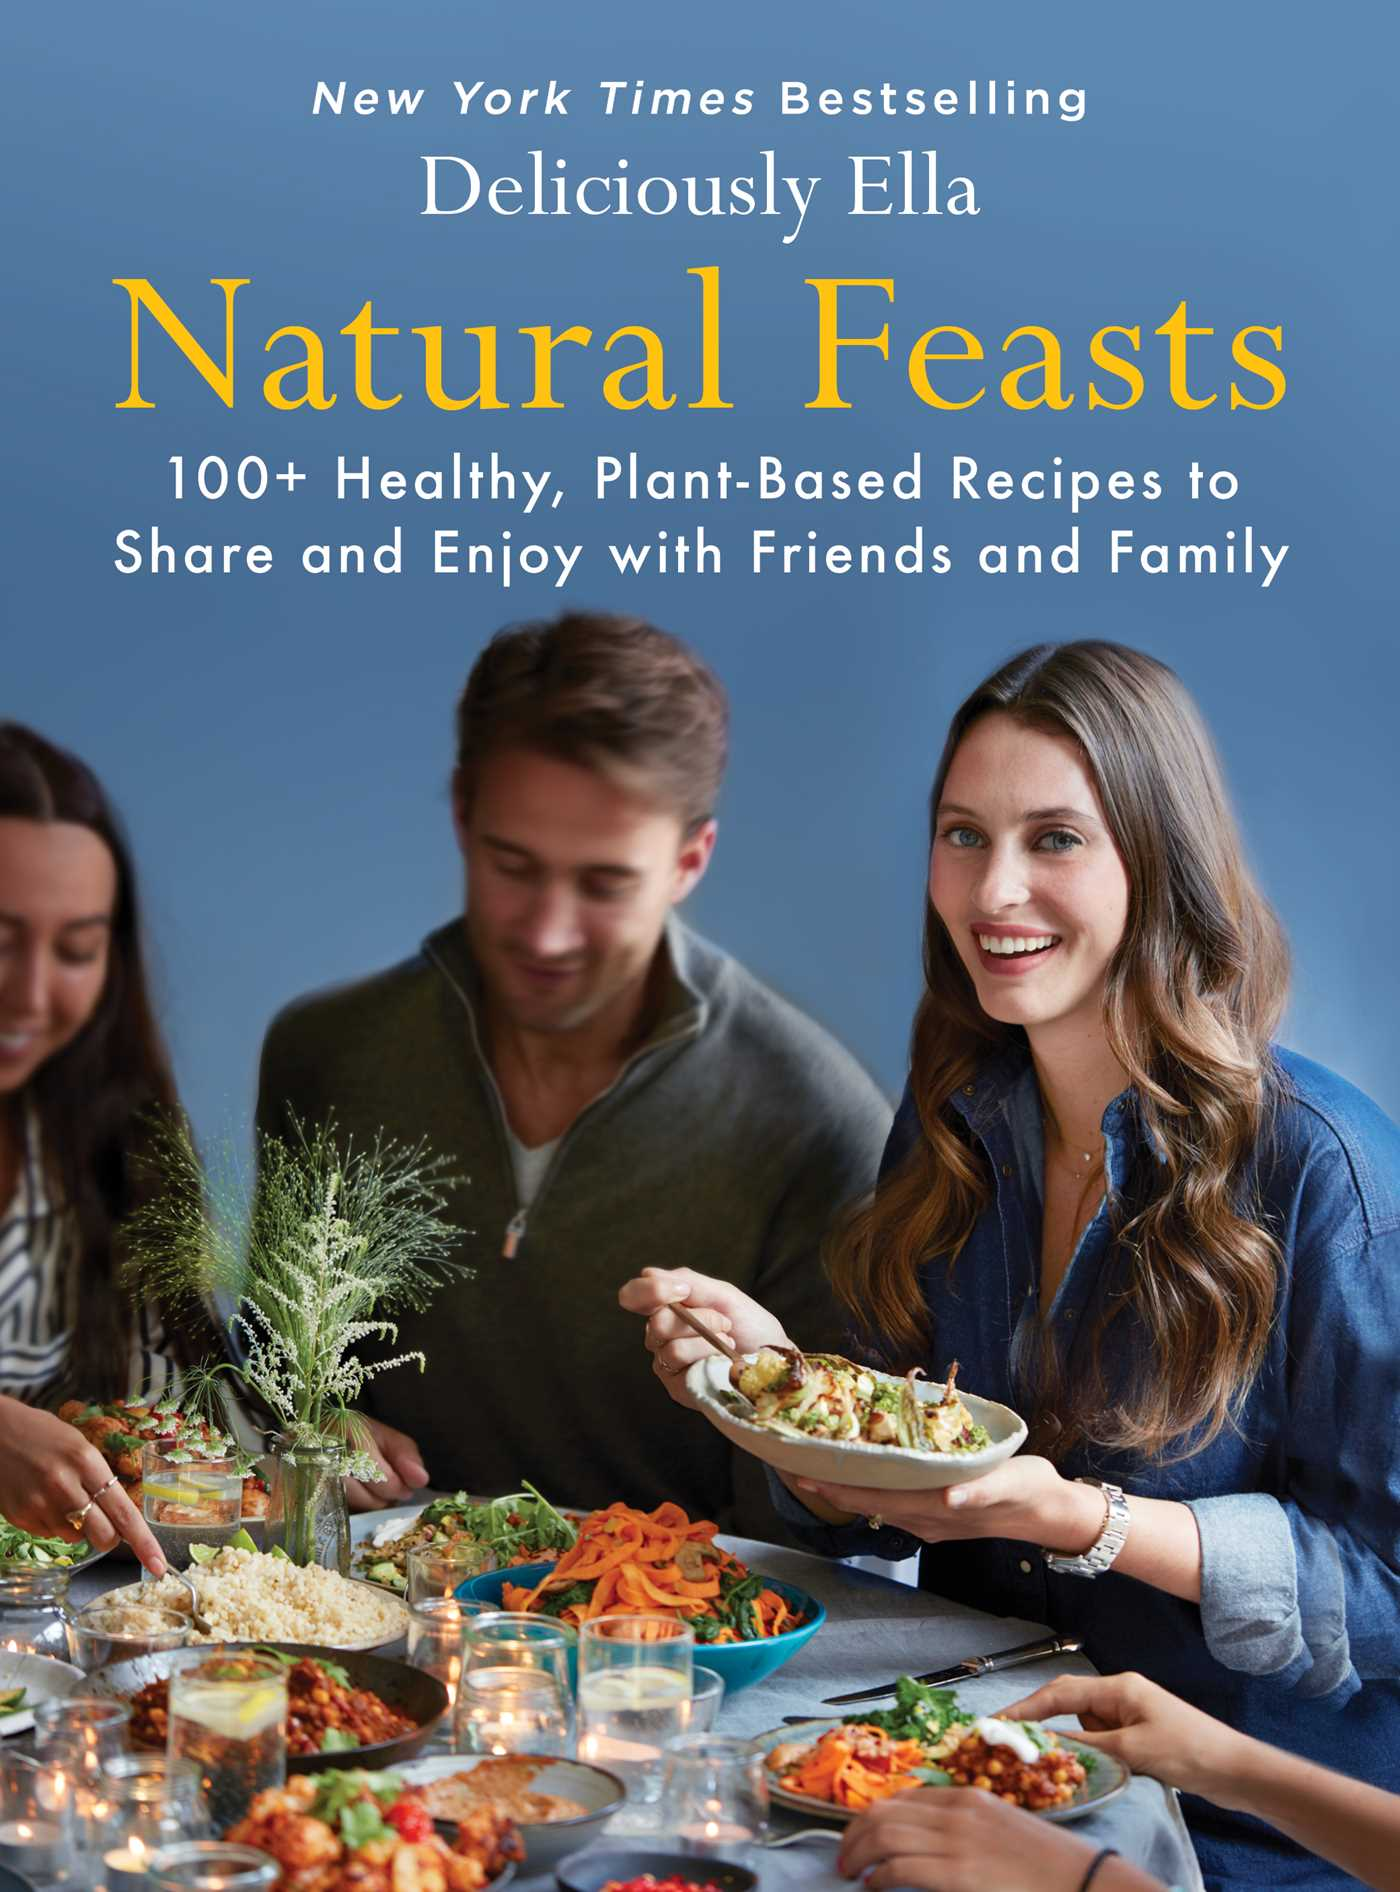 Natural feasts 9781501174285 hr